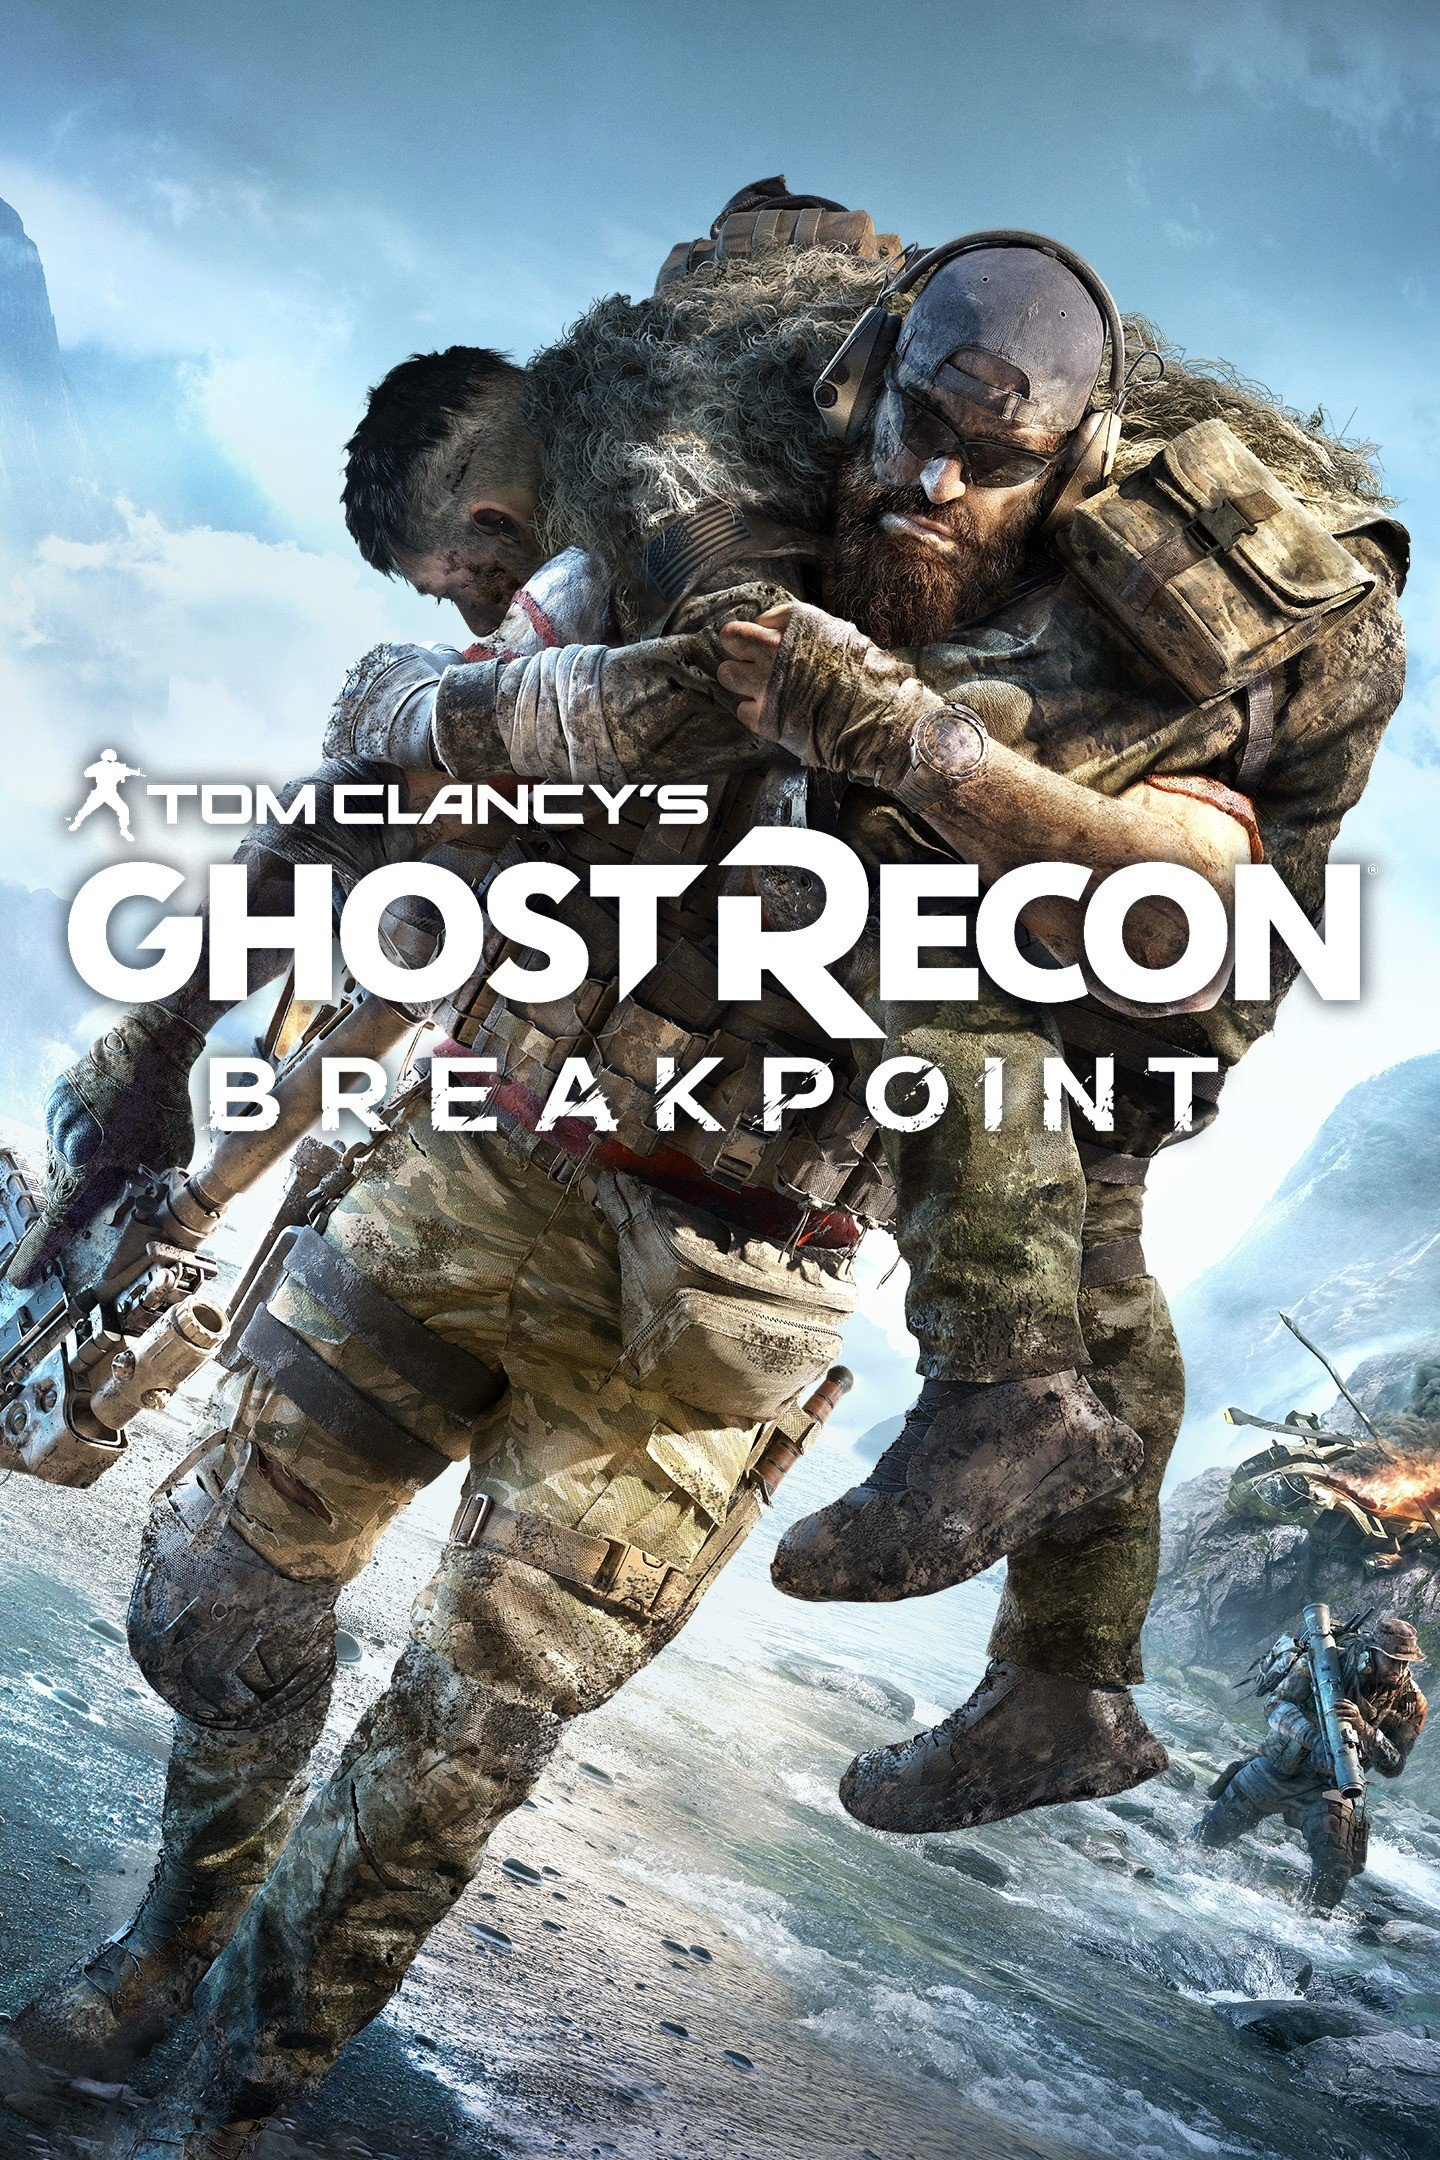 Tom Clancy's Ghost Recon Breakpoint 幽灵行动:断点